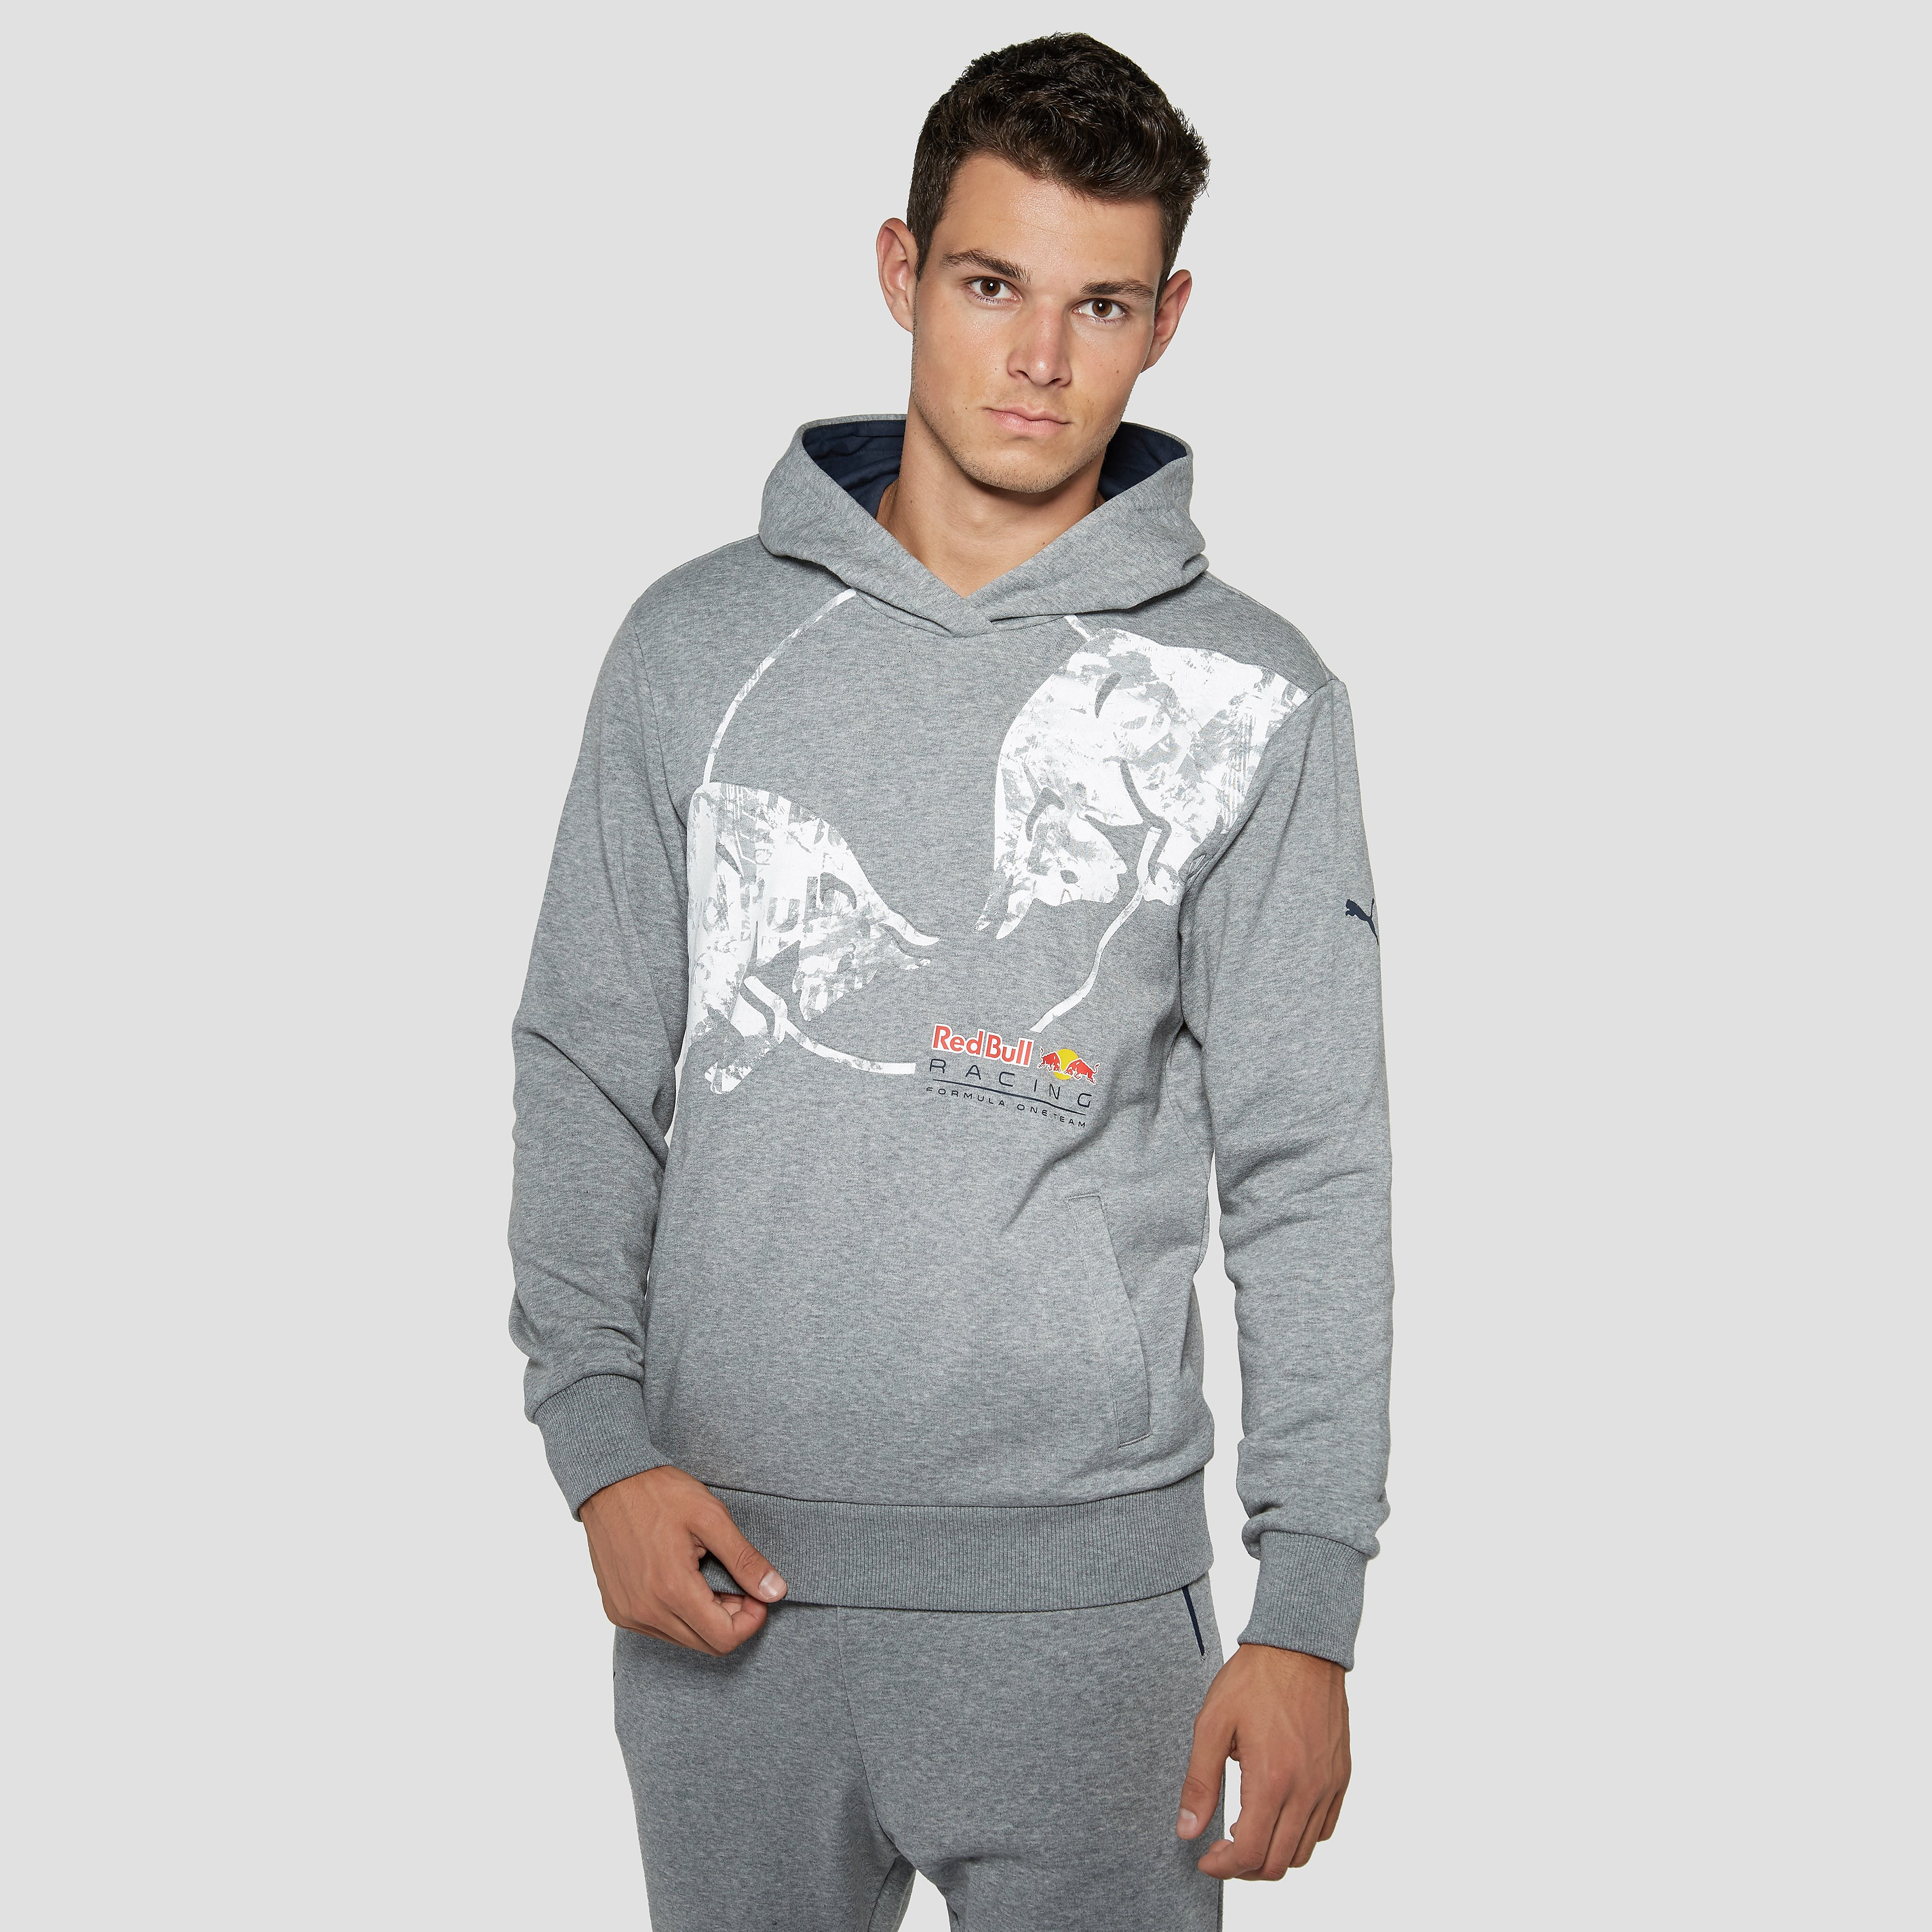 PUMA RED BULL RACING GRAPHIC TRUI GRIJS HEREN